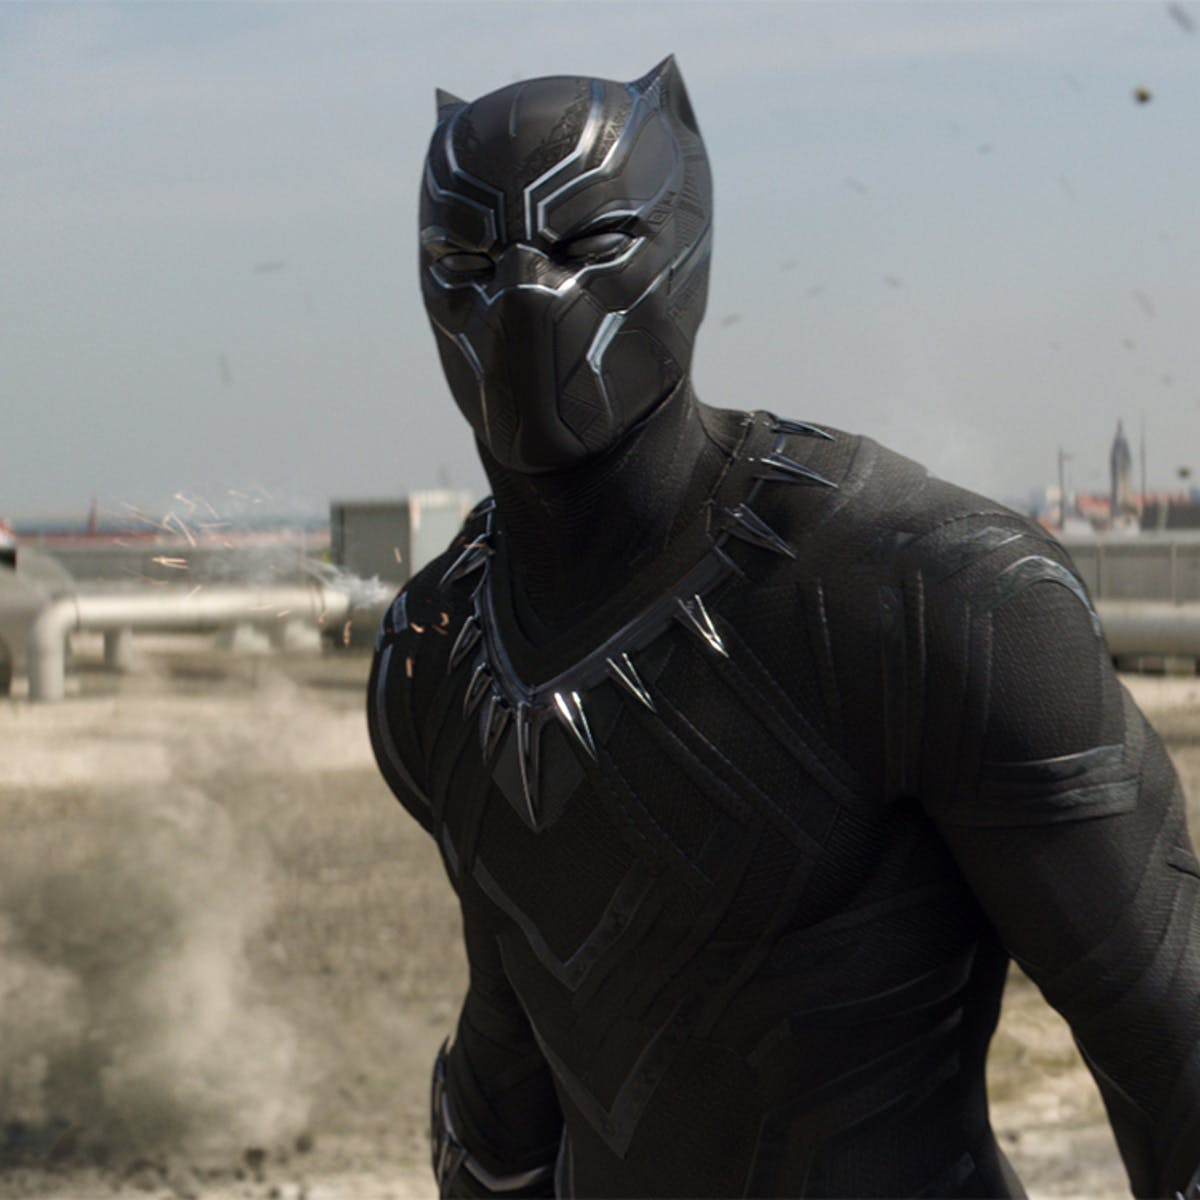 'Black Panther' 2 release date allegedly delayed, leak says